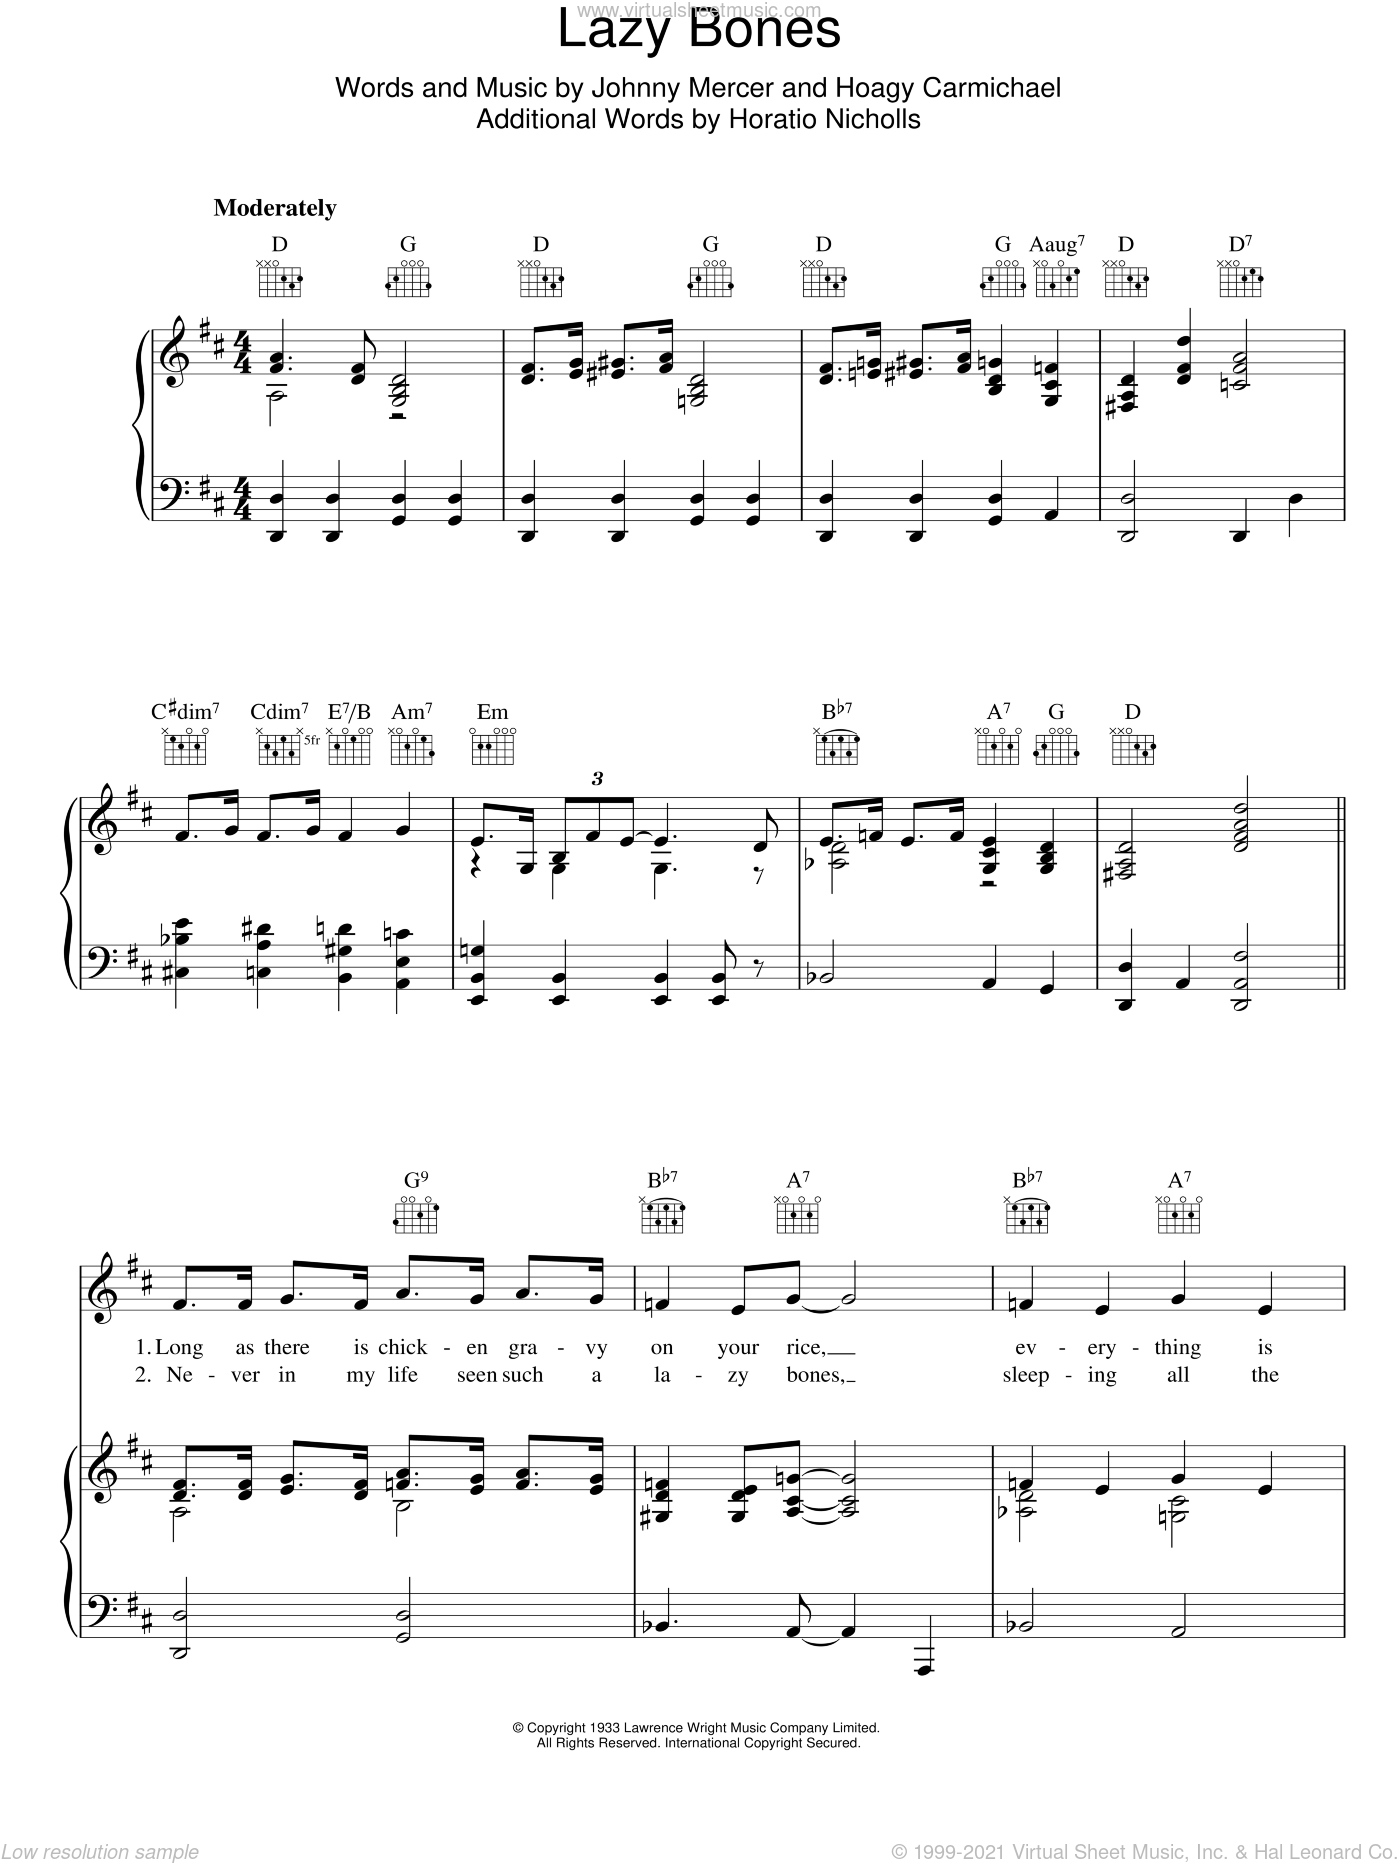 Lazy Bones sheet music for voice, piano or guitar by Hoagy Carmichael